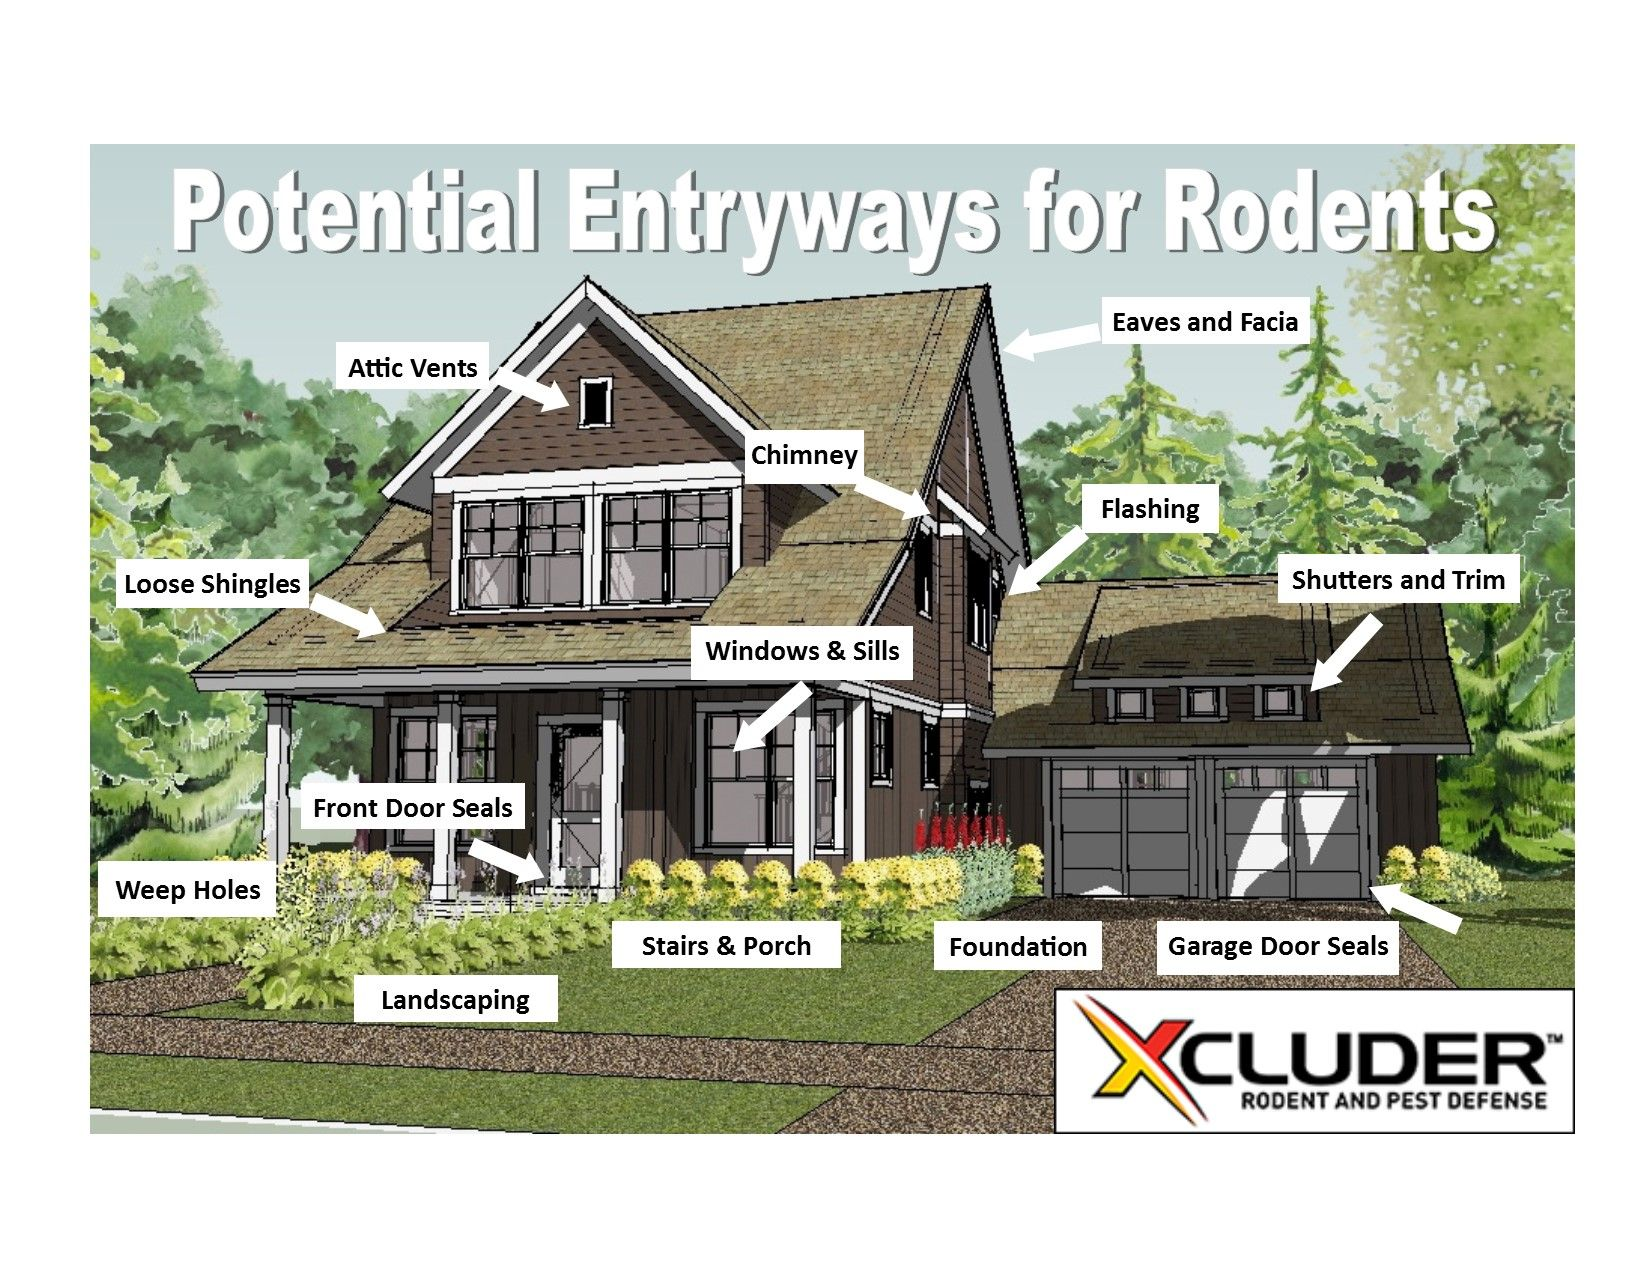 Here is a great list of potential entryways for rodents